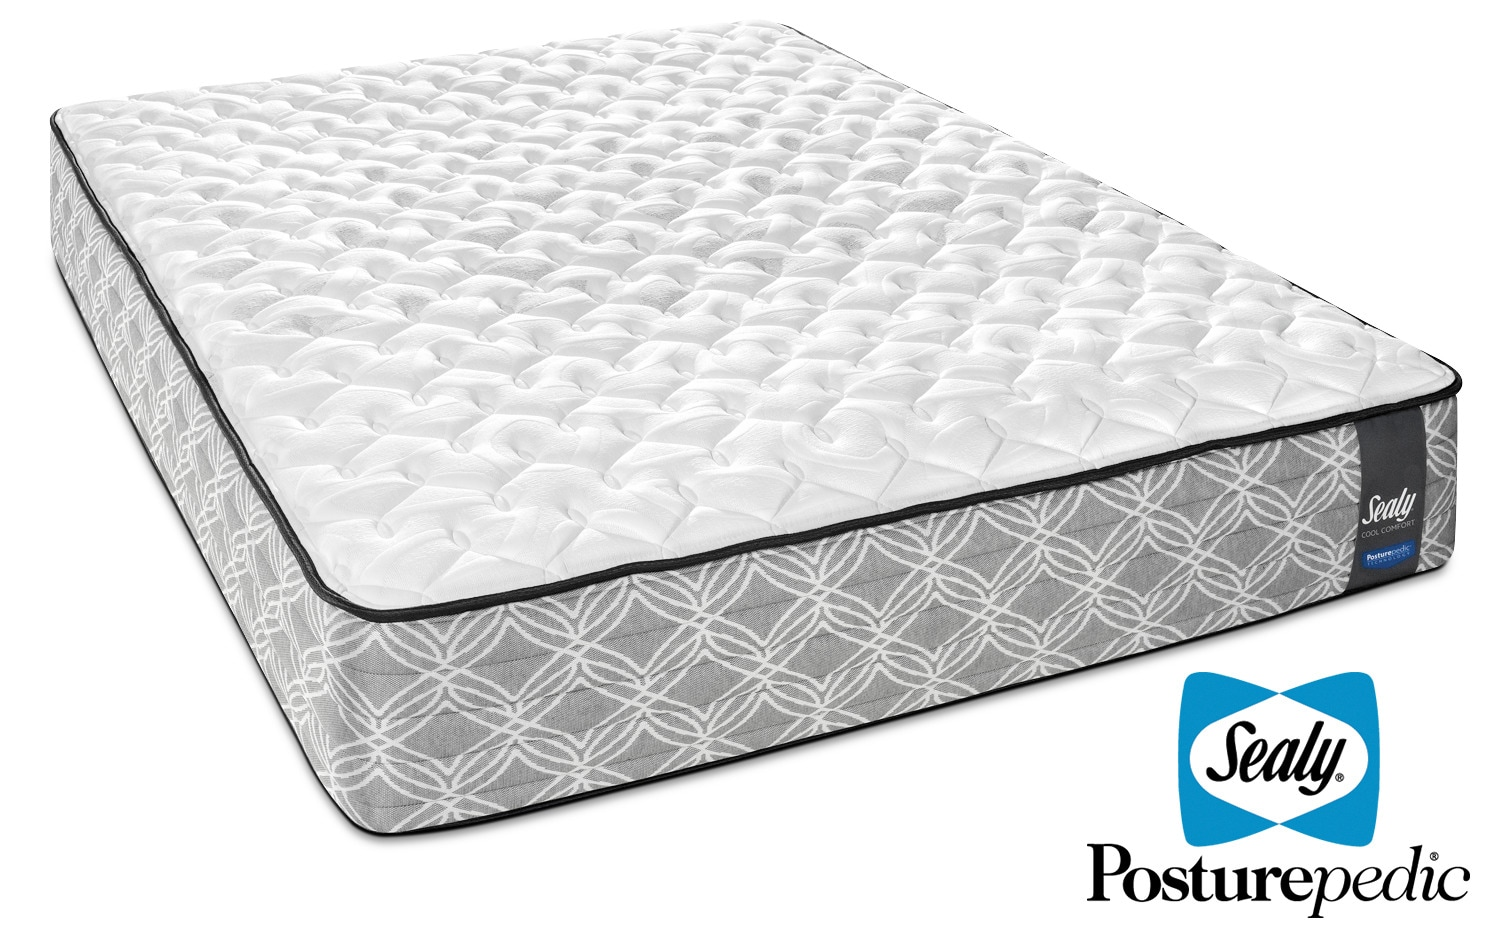 Sealy Moonbeam Firm Full Mattress